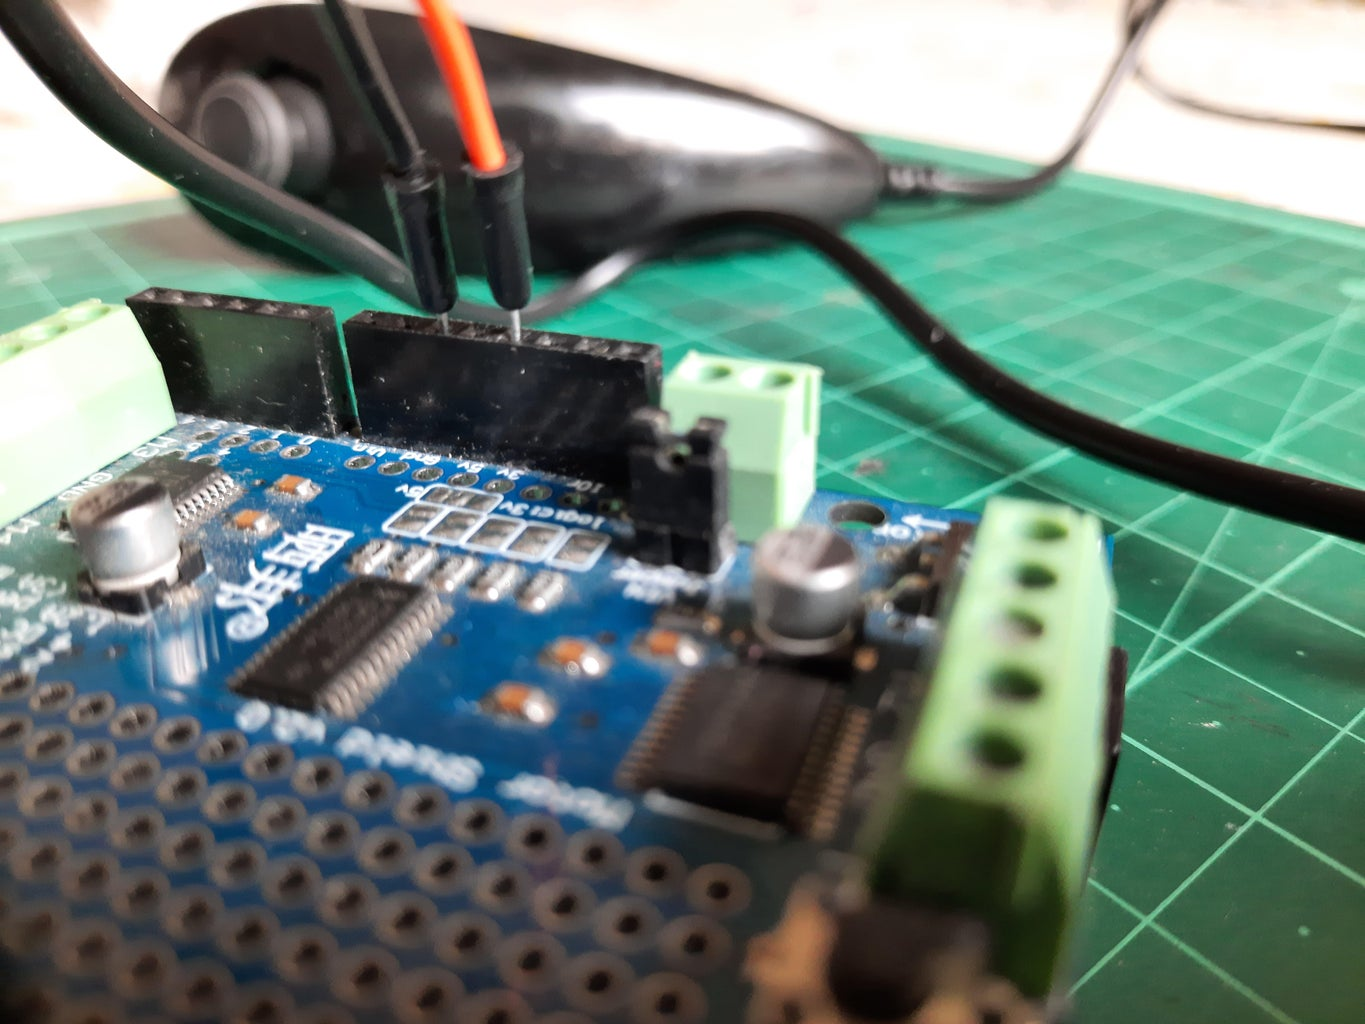 Connect the Wii Nunchuk to the Arduino Board